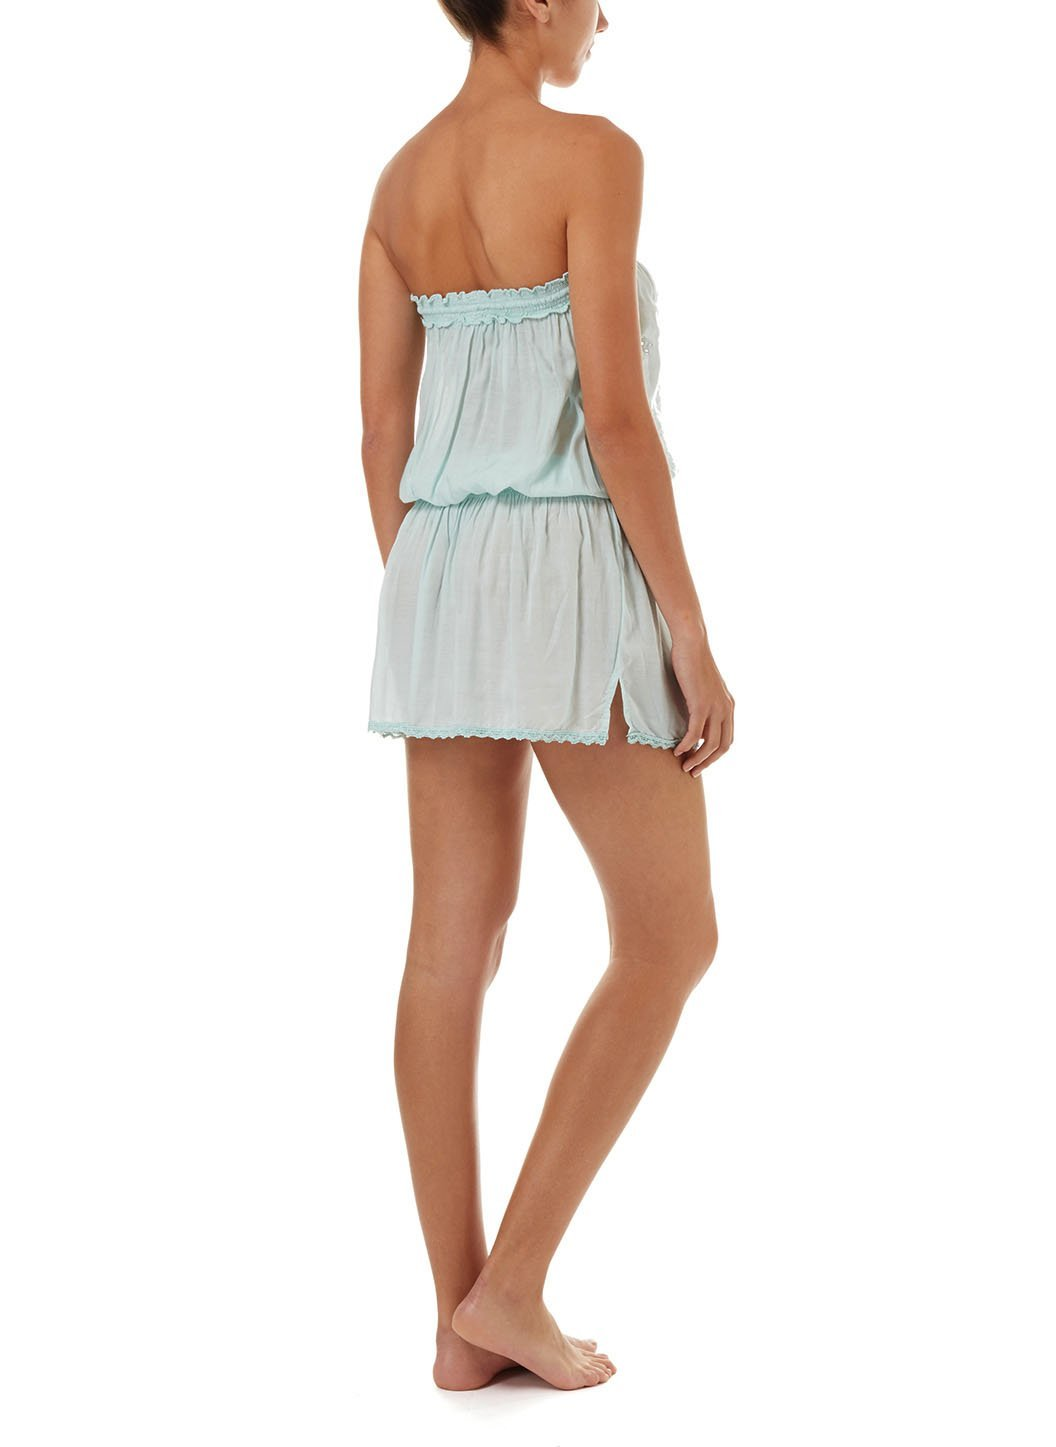 fruley mint bandeau embroidered short beach dress 2019 B